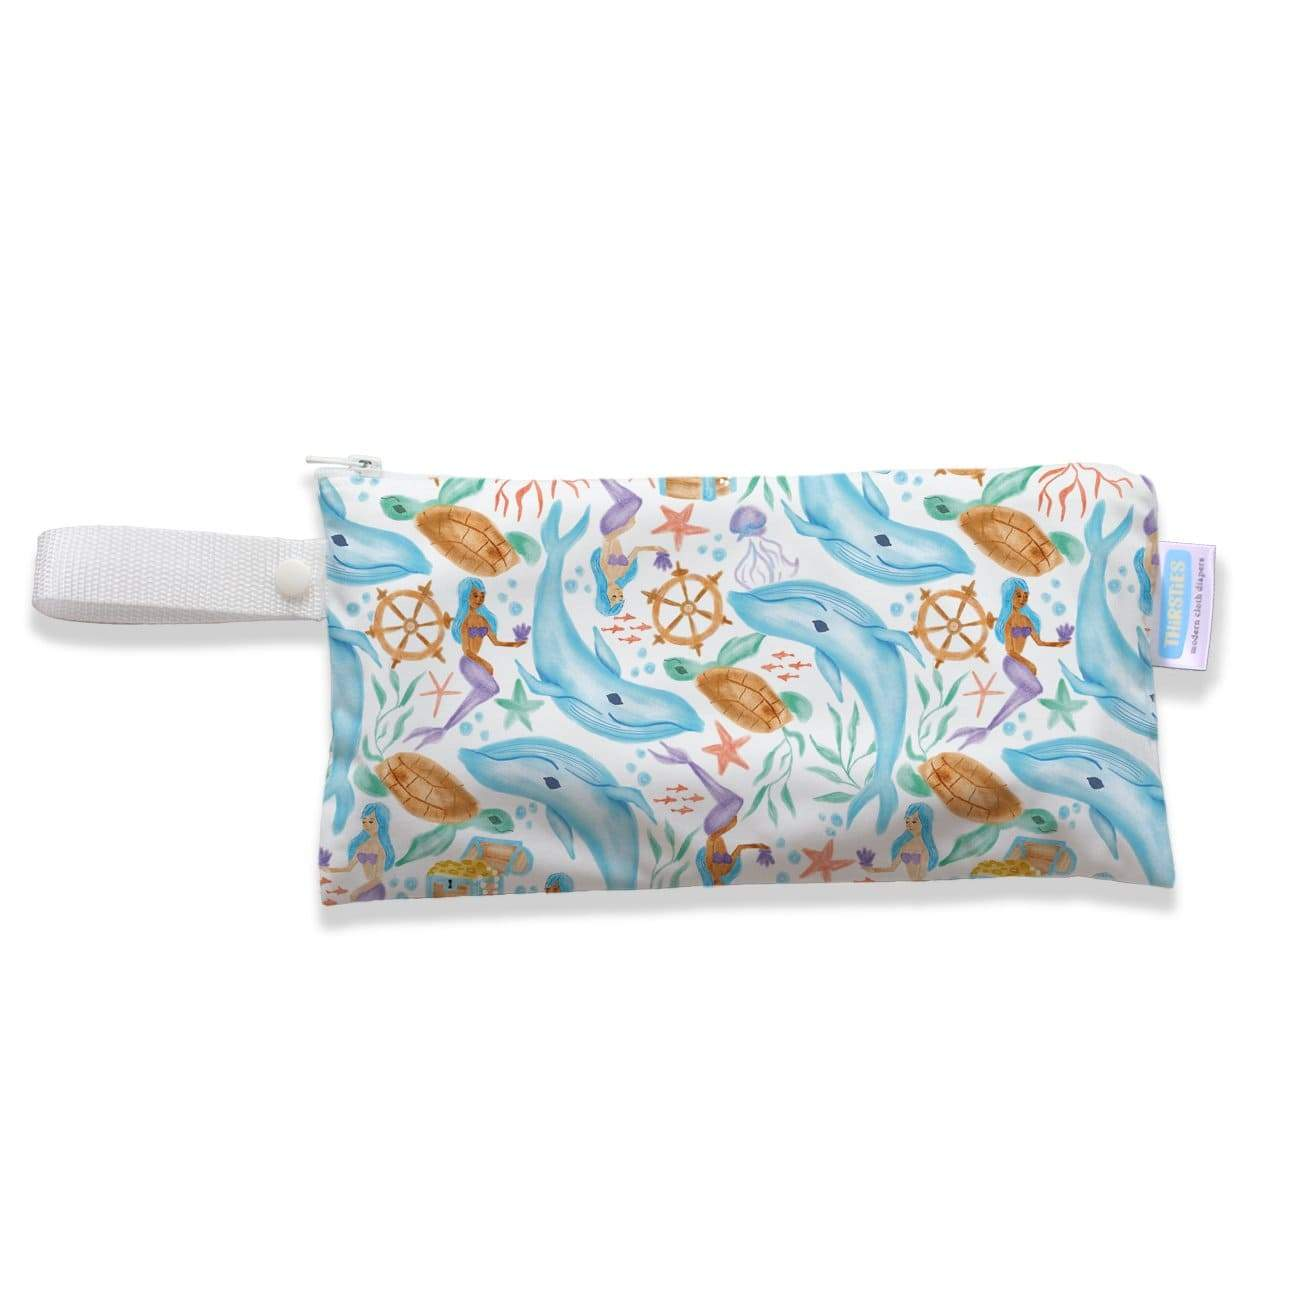 Thirsties Clutch Bag - Mermaid Lagoon